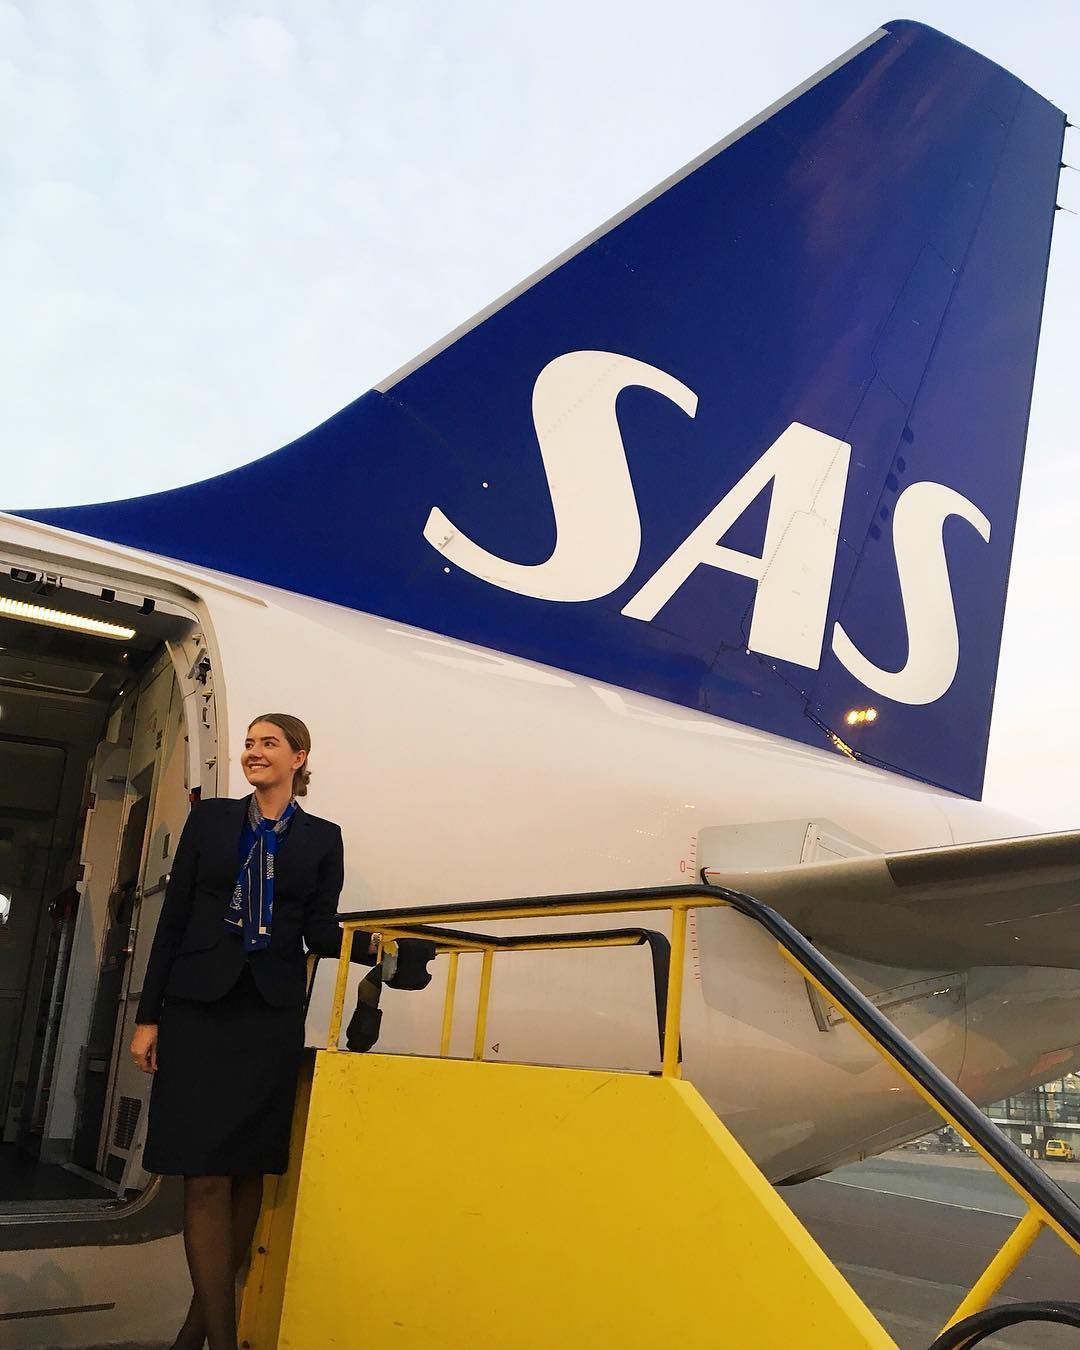 Sas Scandinavian Airlines Airbus A319 Scandinavian Airlines System Aviation History Sas